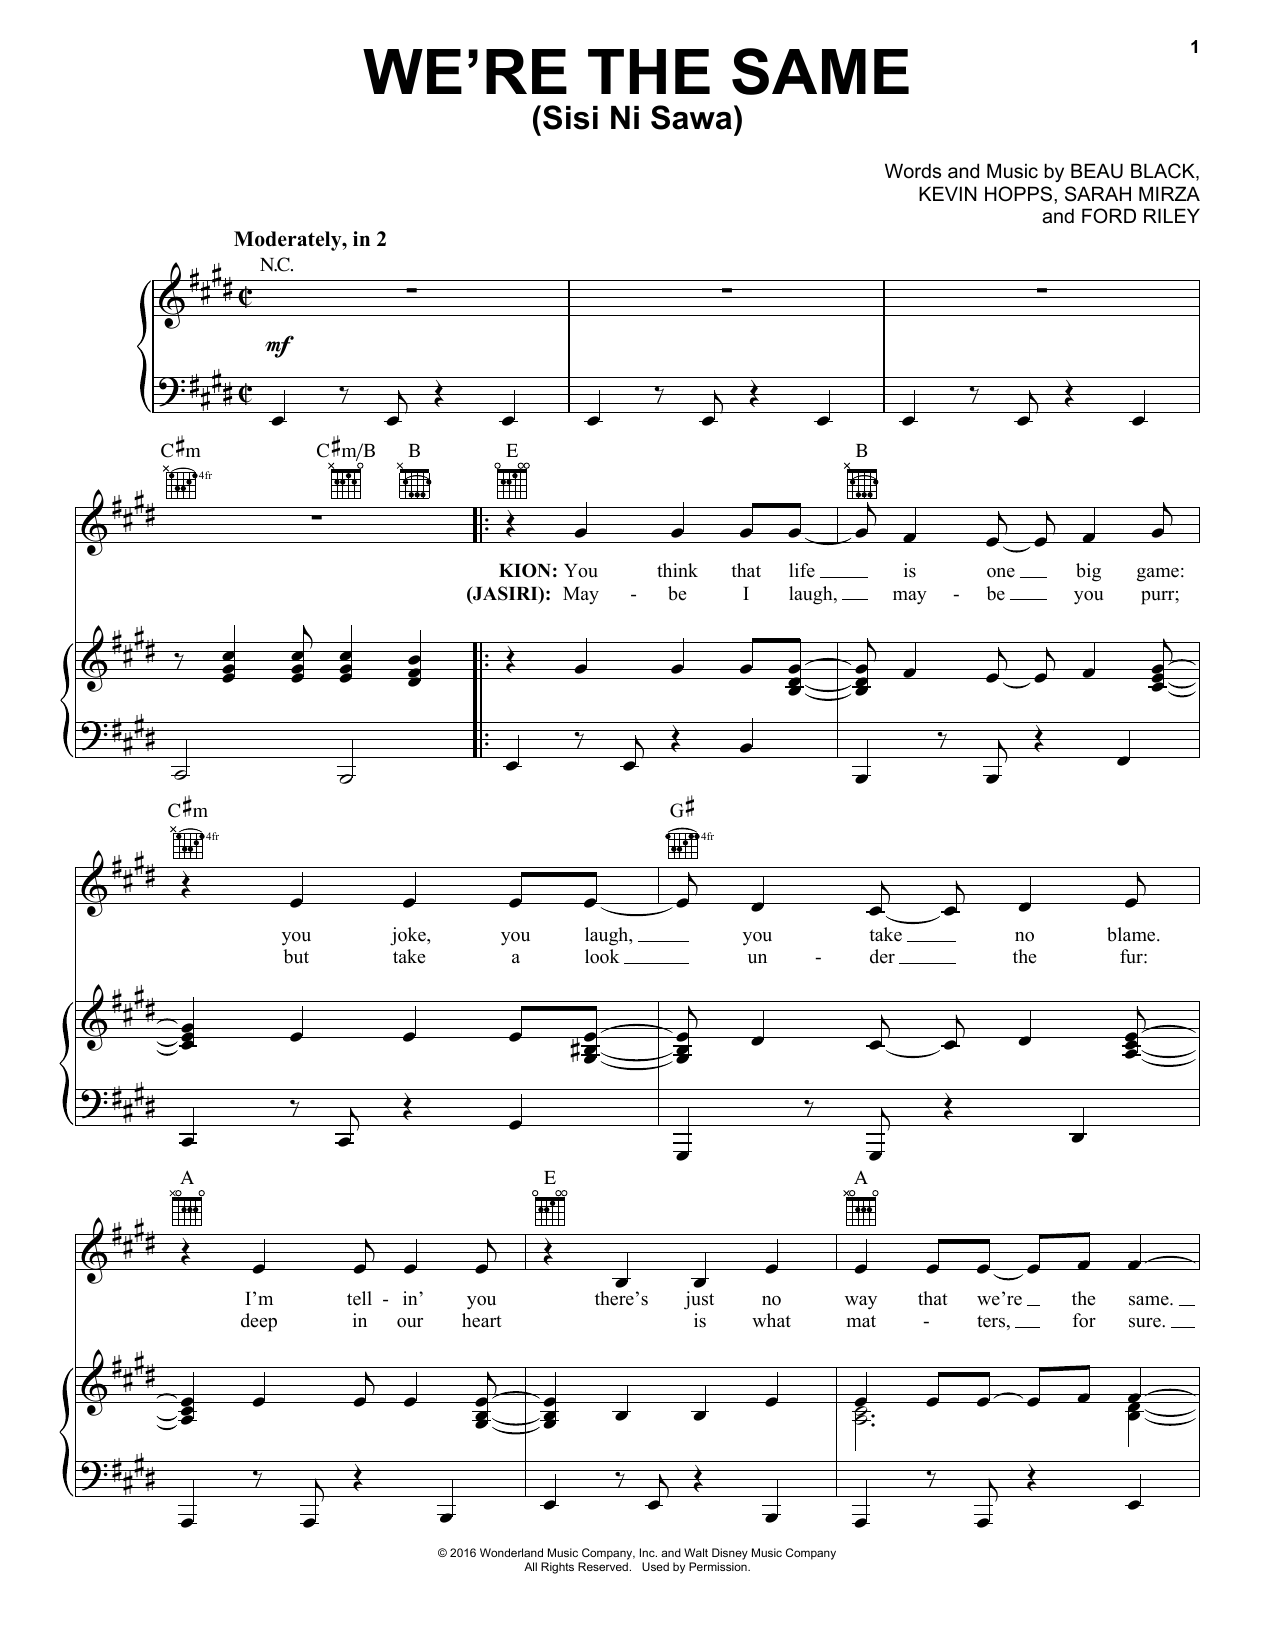 We're The Same (Sis Ni Sawa) Sheet Music